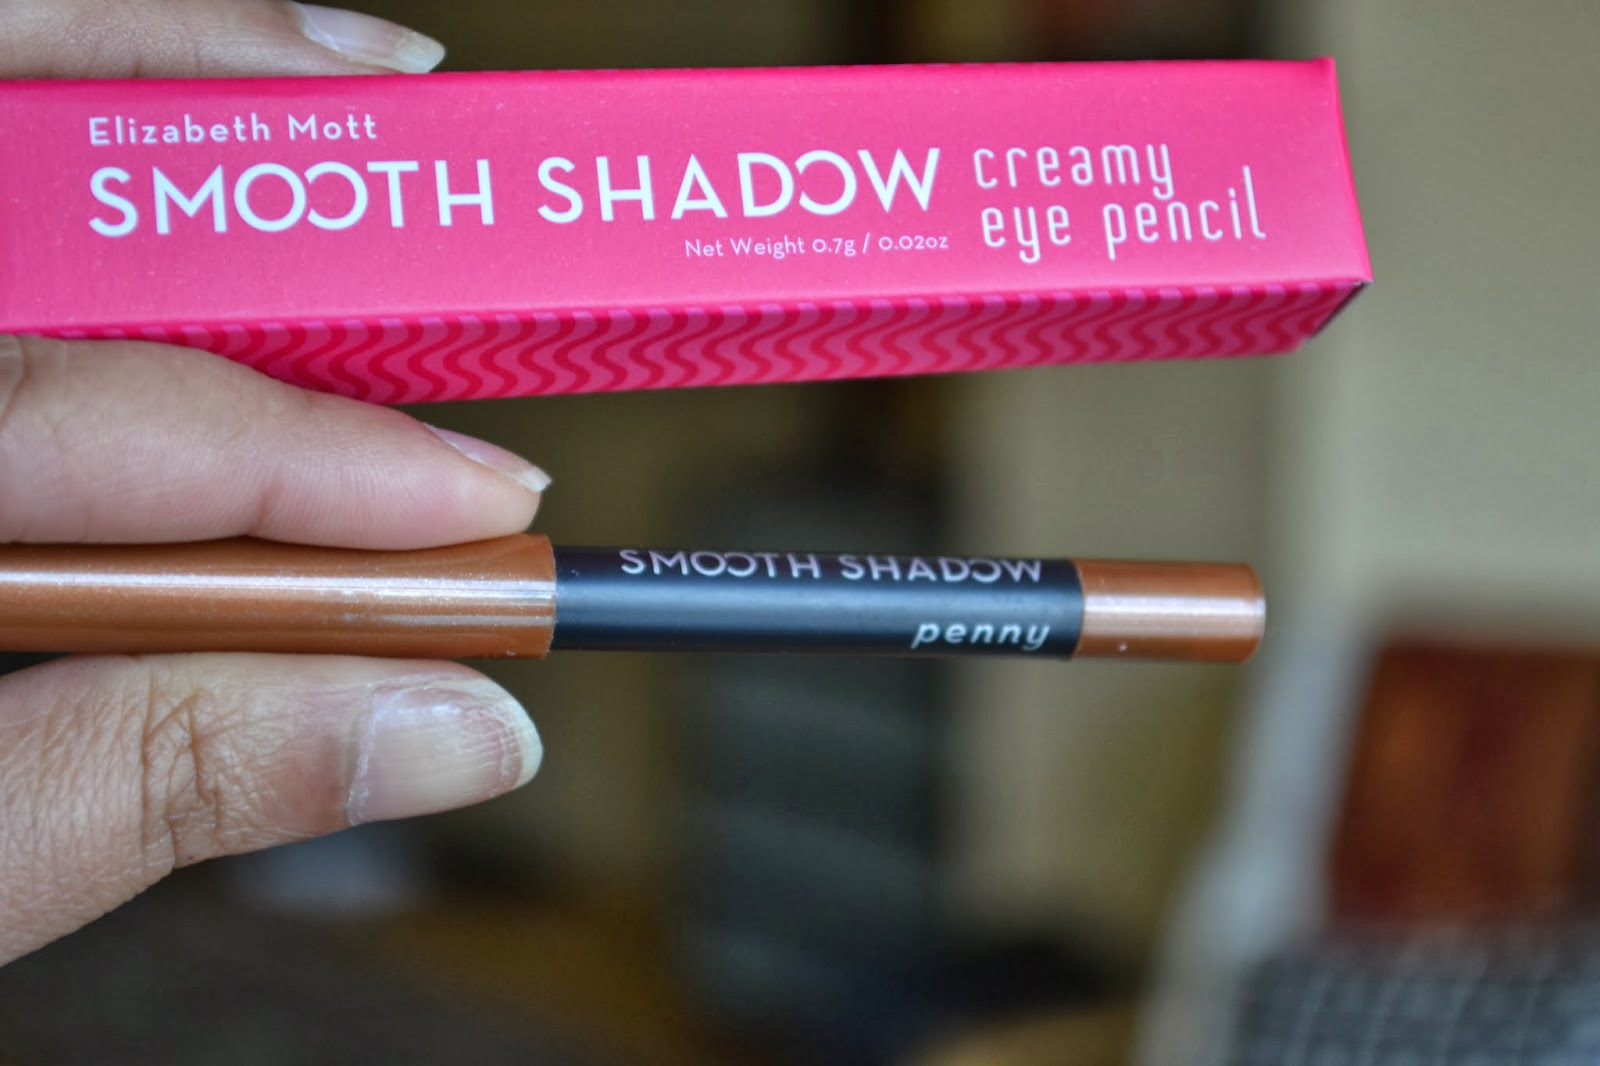 Elizabeth Mott Smooth Shadow creamy eye pencil